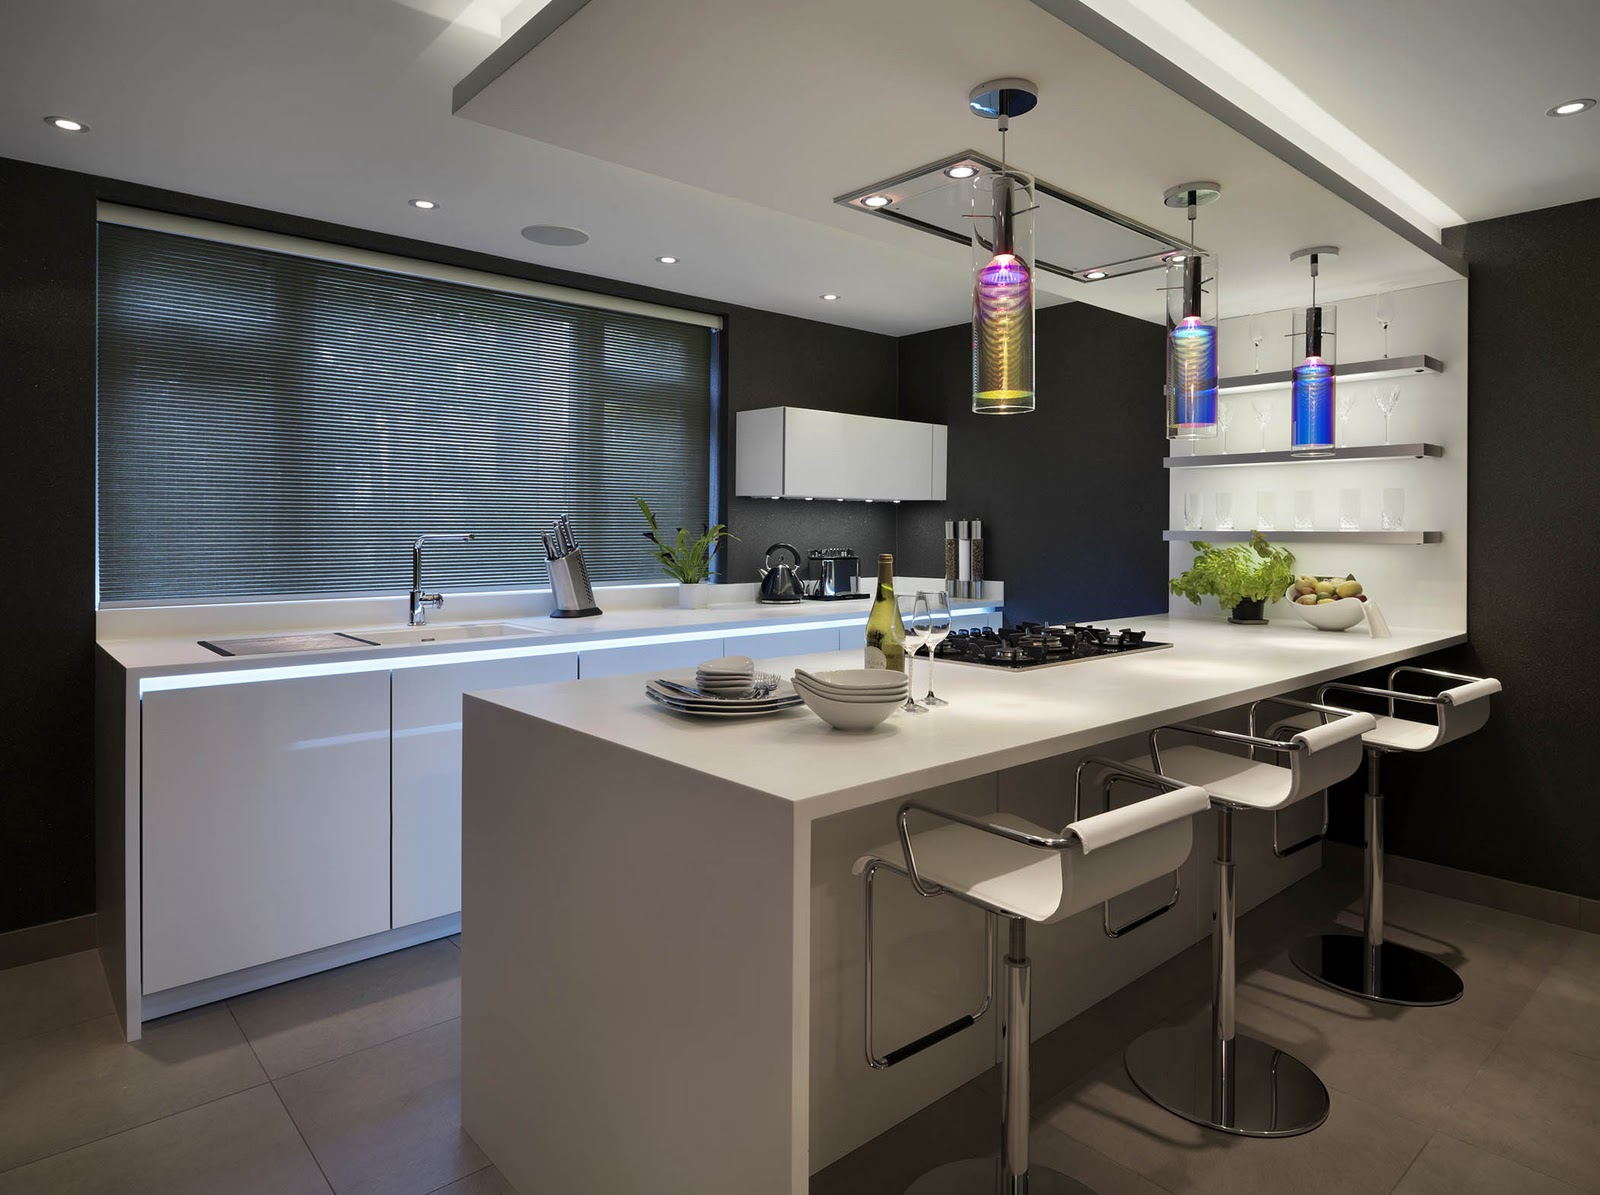 Excellent diane berry kitchens client kitchens october for Suspension cuisine blanche